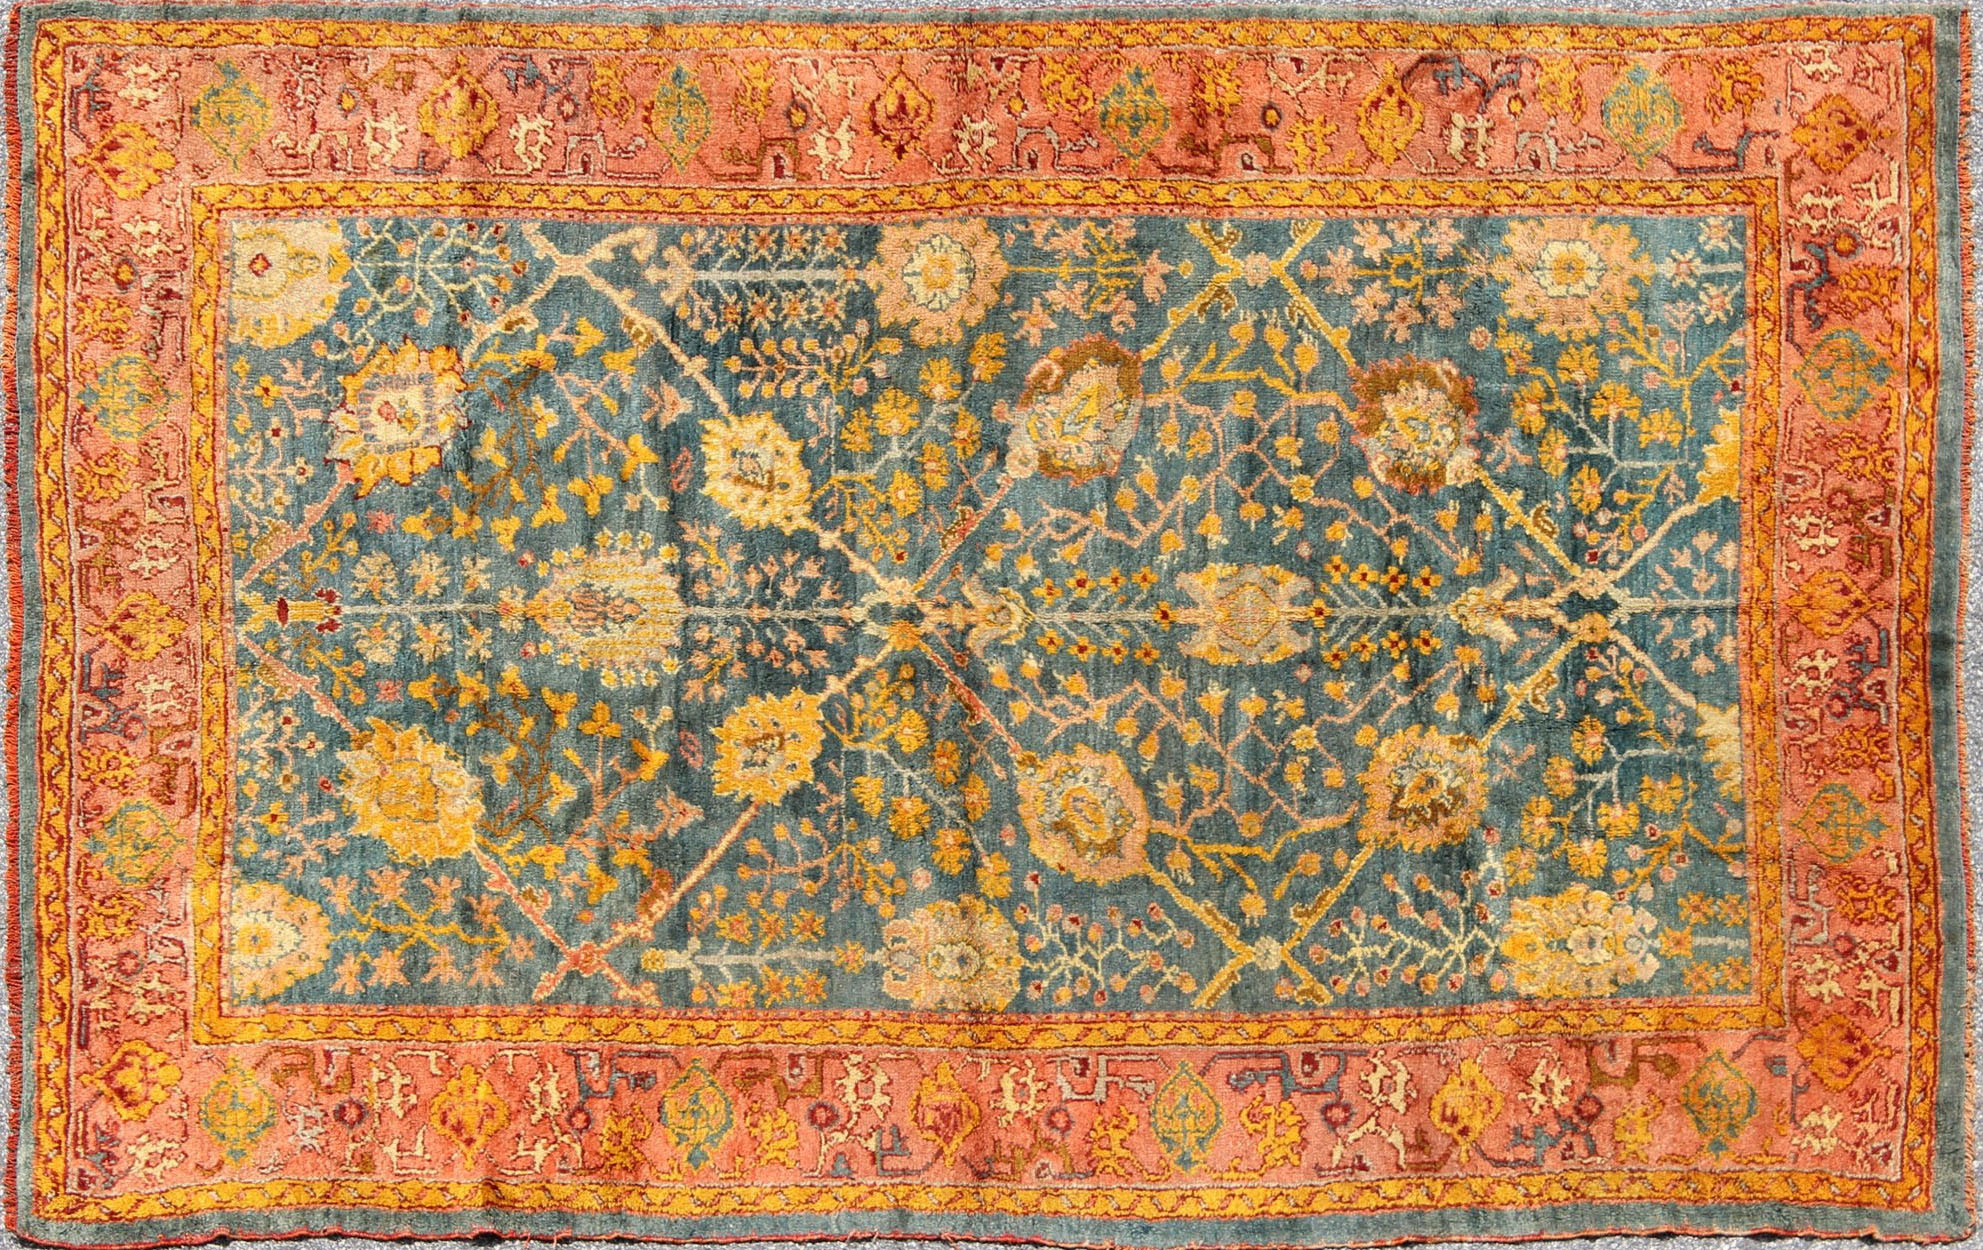 Antique Khotan